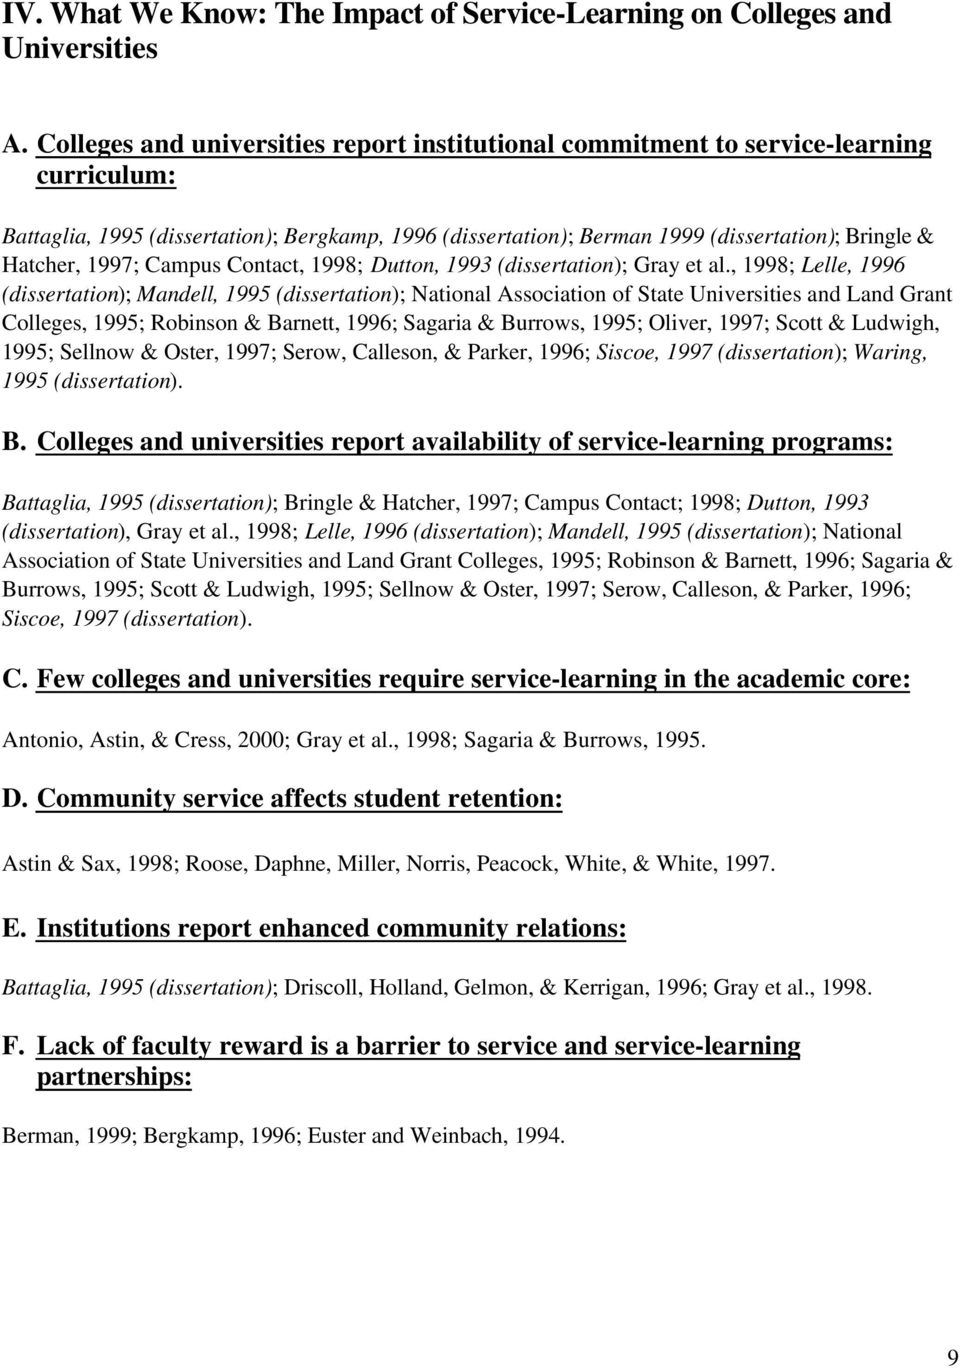 1997; Campus Contact, 1998; Dutton, 1993 (dissertation); Gray et al.